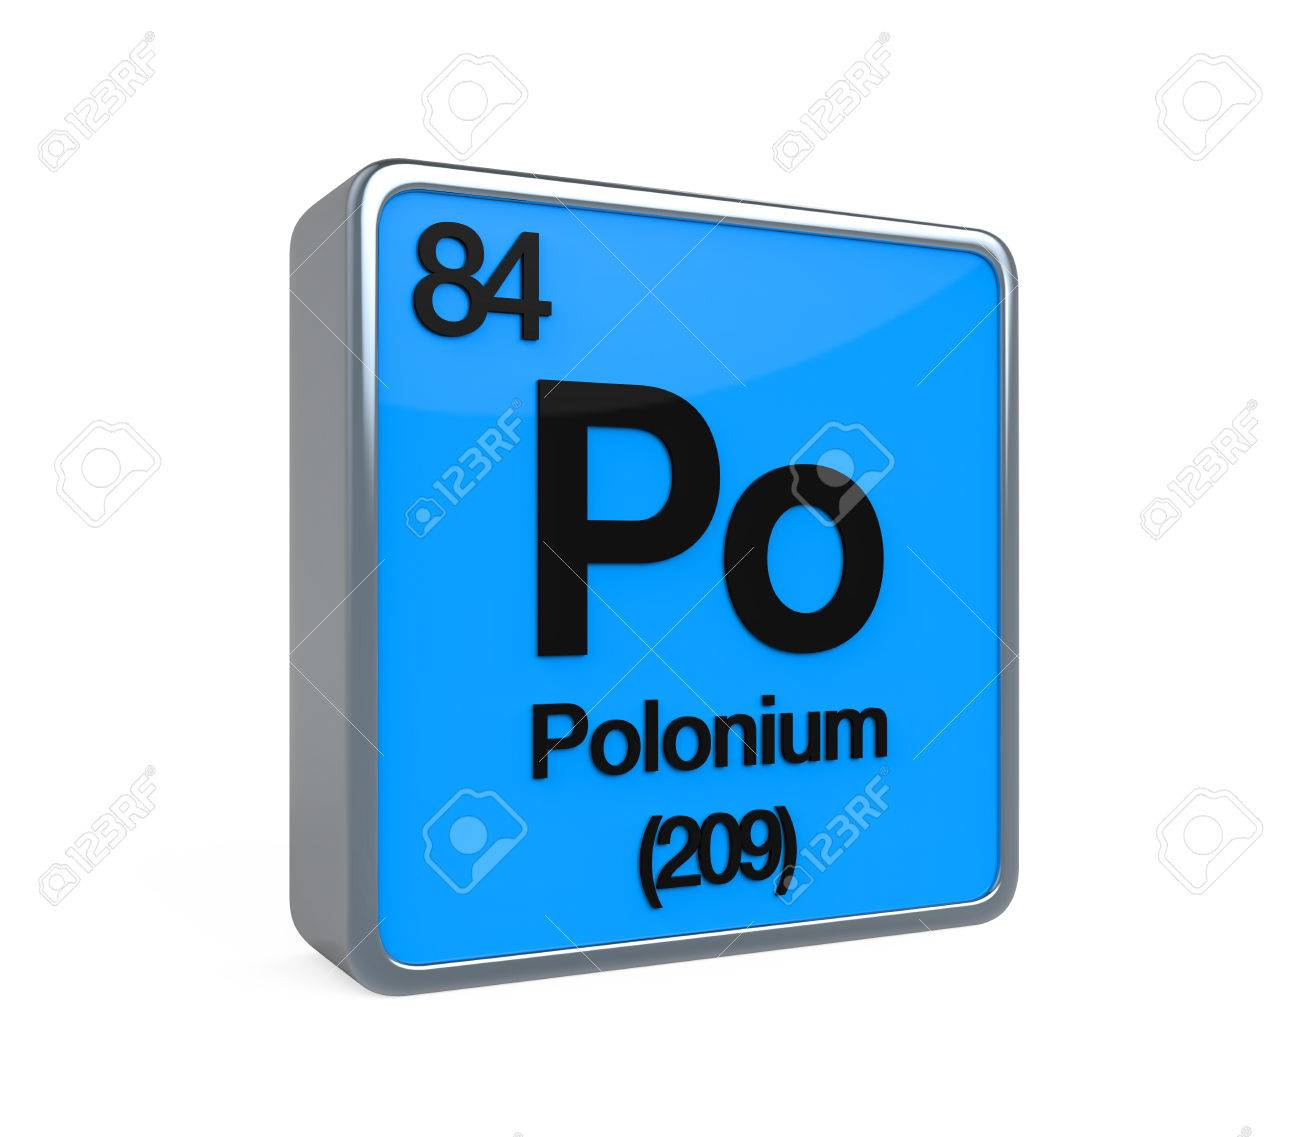 Polonium periodic table choice image periodic table images polonium element periodic table stock photo picture and royalty polonium element periodic table stock photo 32898033 gamestrikefo Choice Image